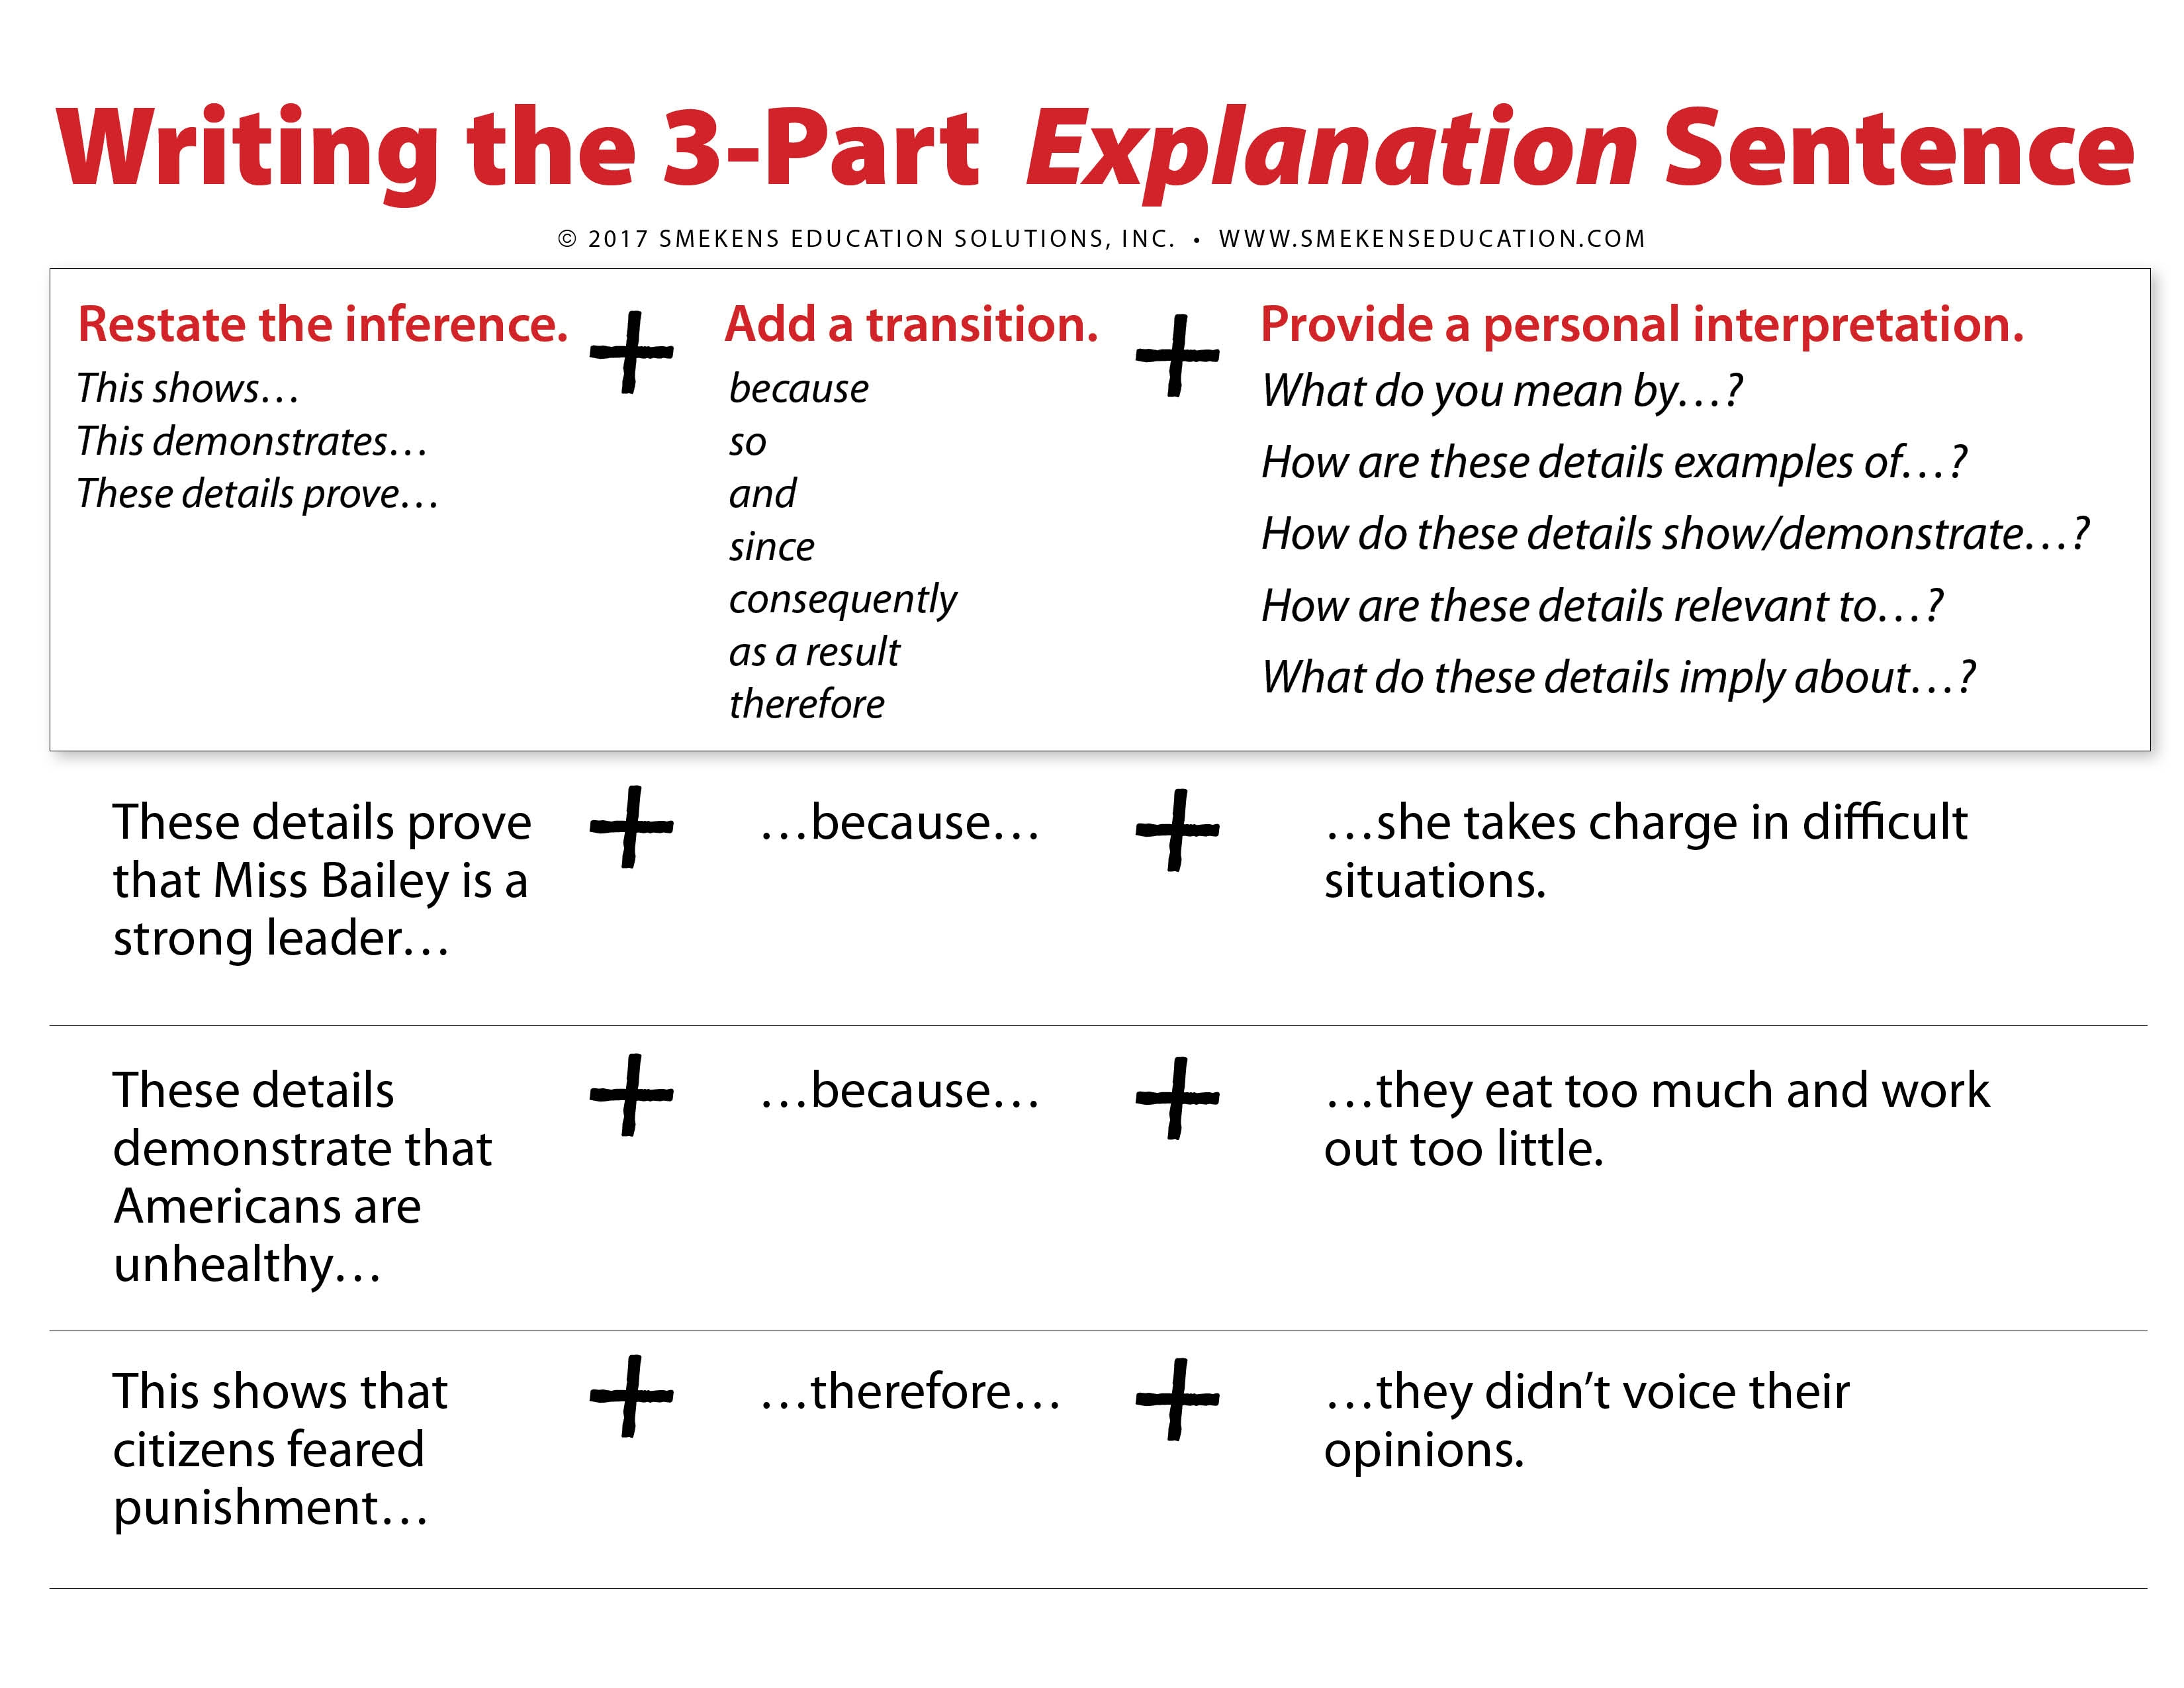 Write the 3-Part Explanation Sentence for Standardized Assessments